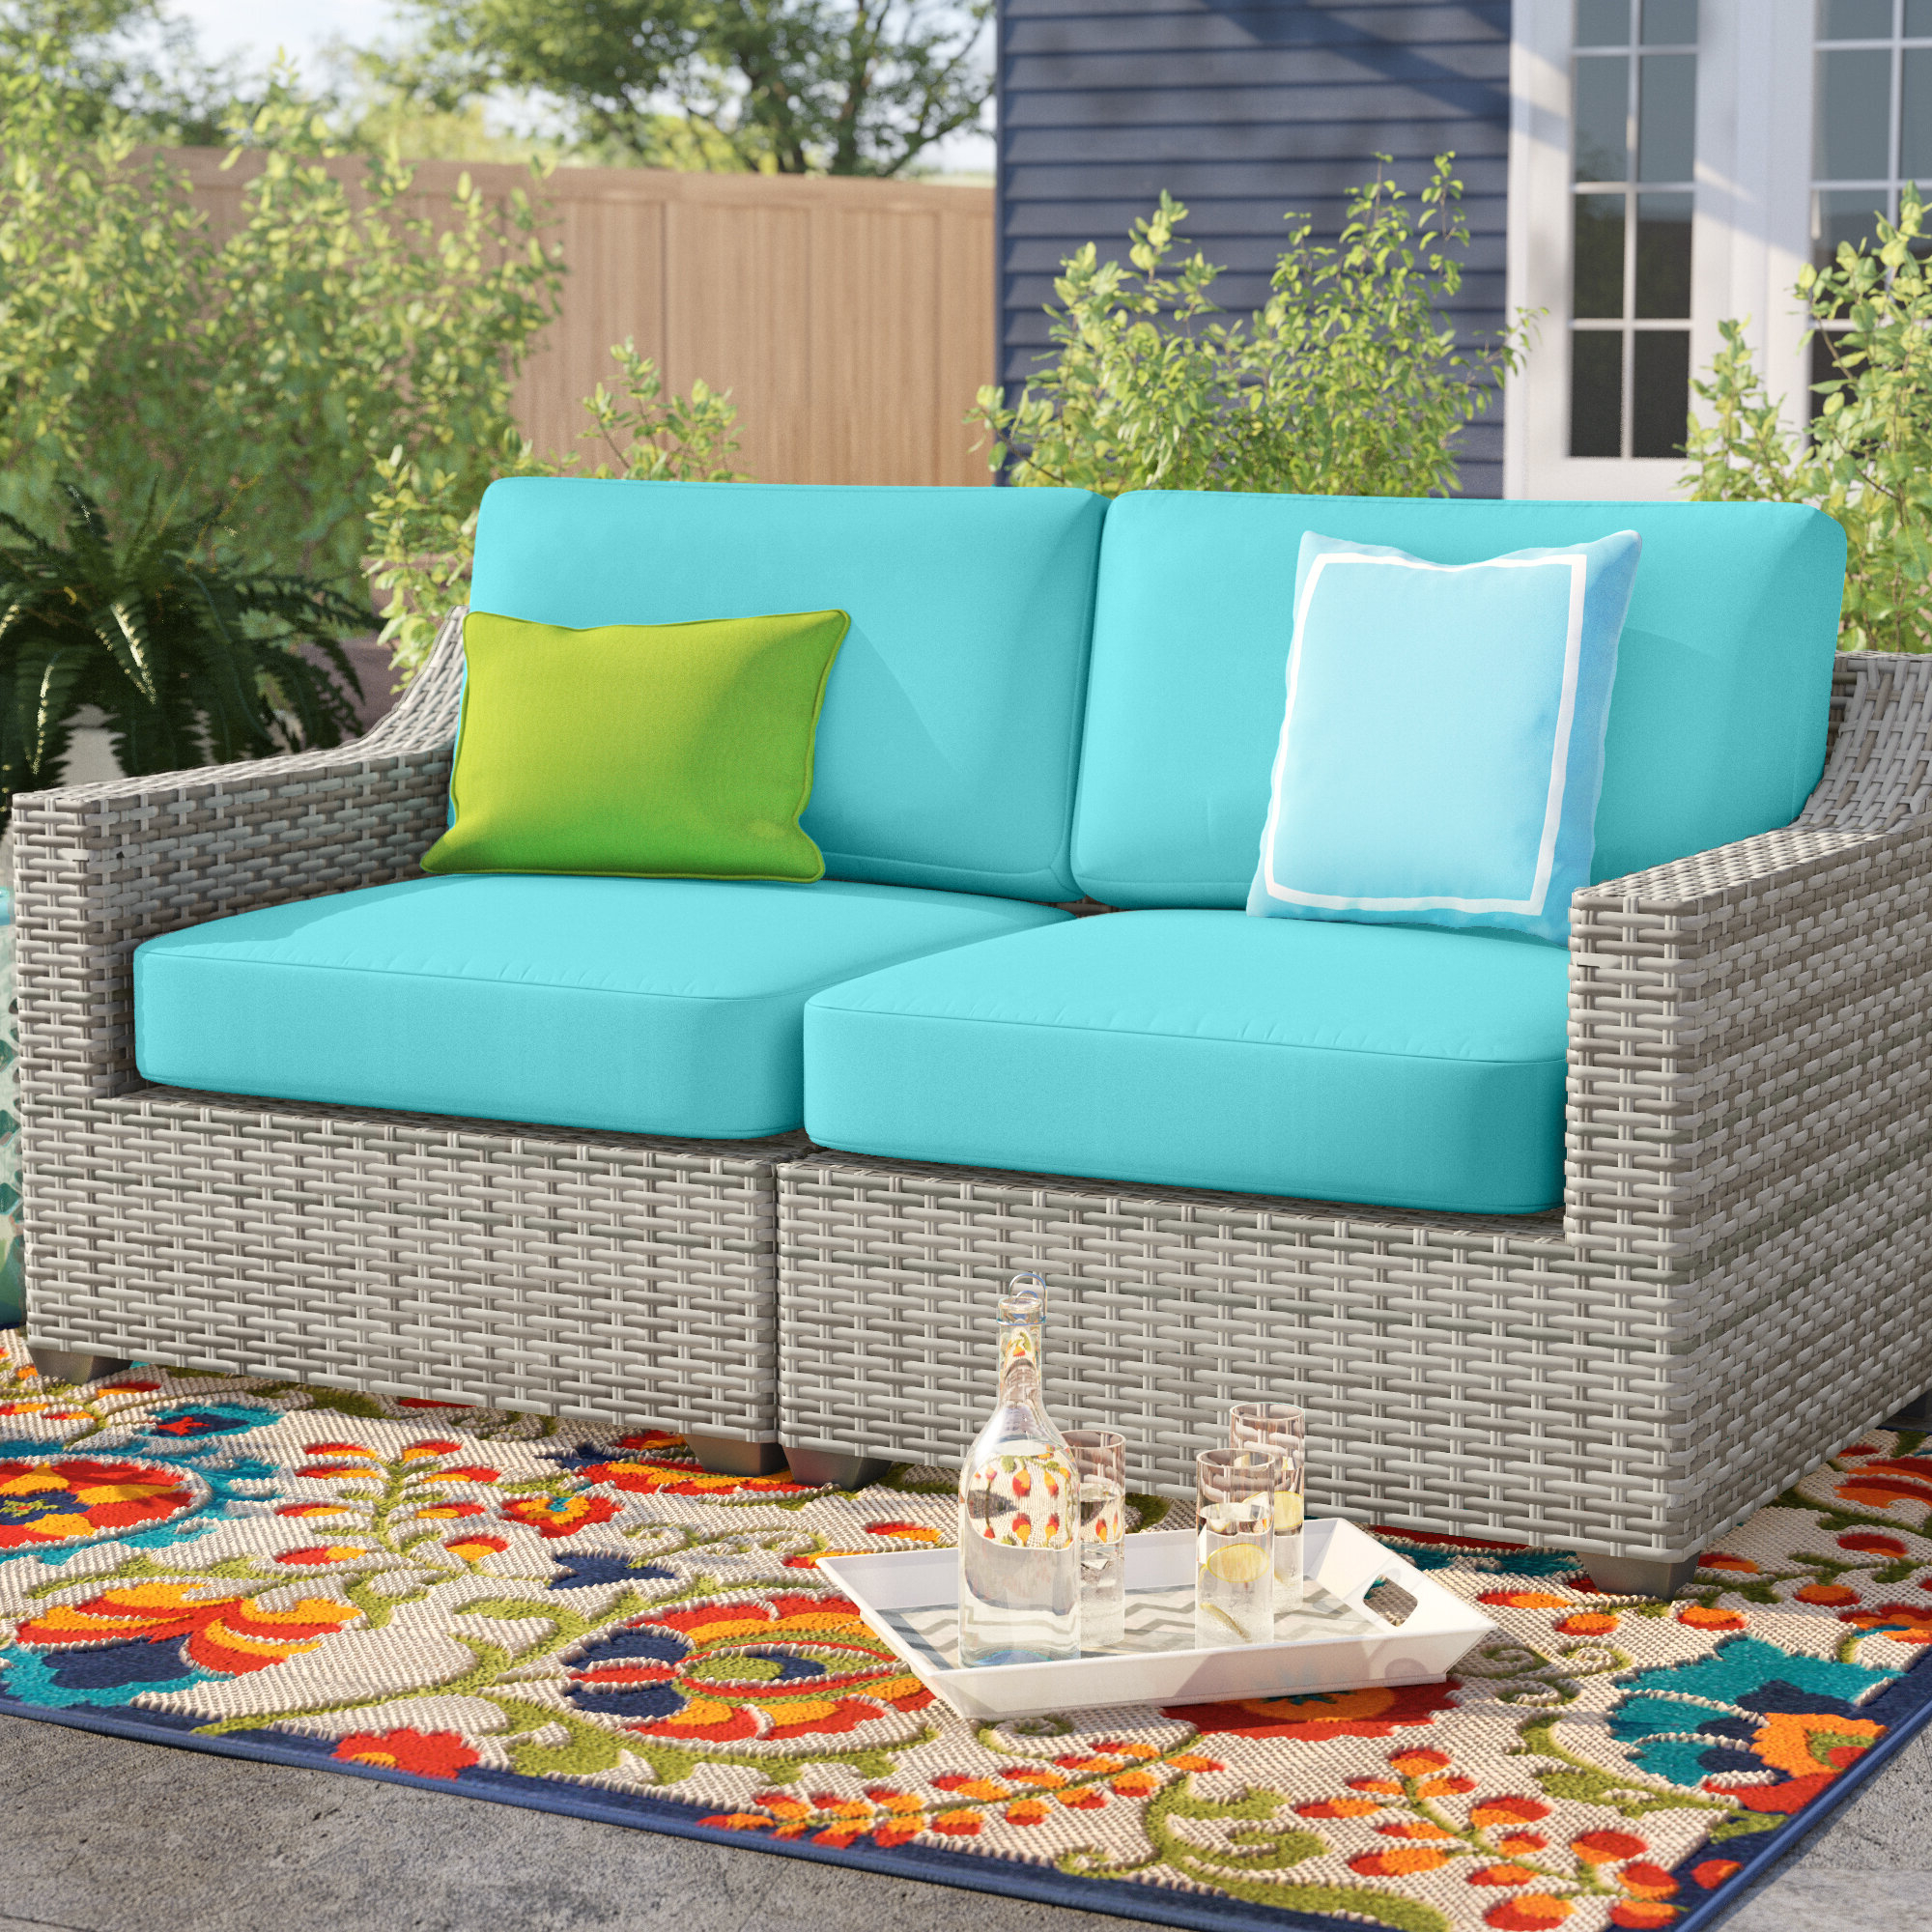 Huddleson Loveseats With Cushion Pertaining To Well Liked Falmouth Loveseat With Cushions (View 12 of 20)